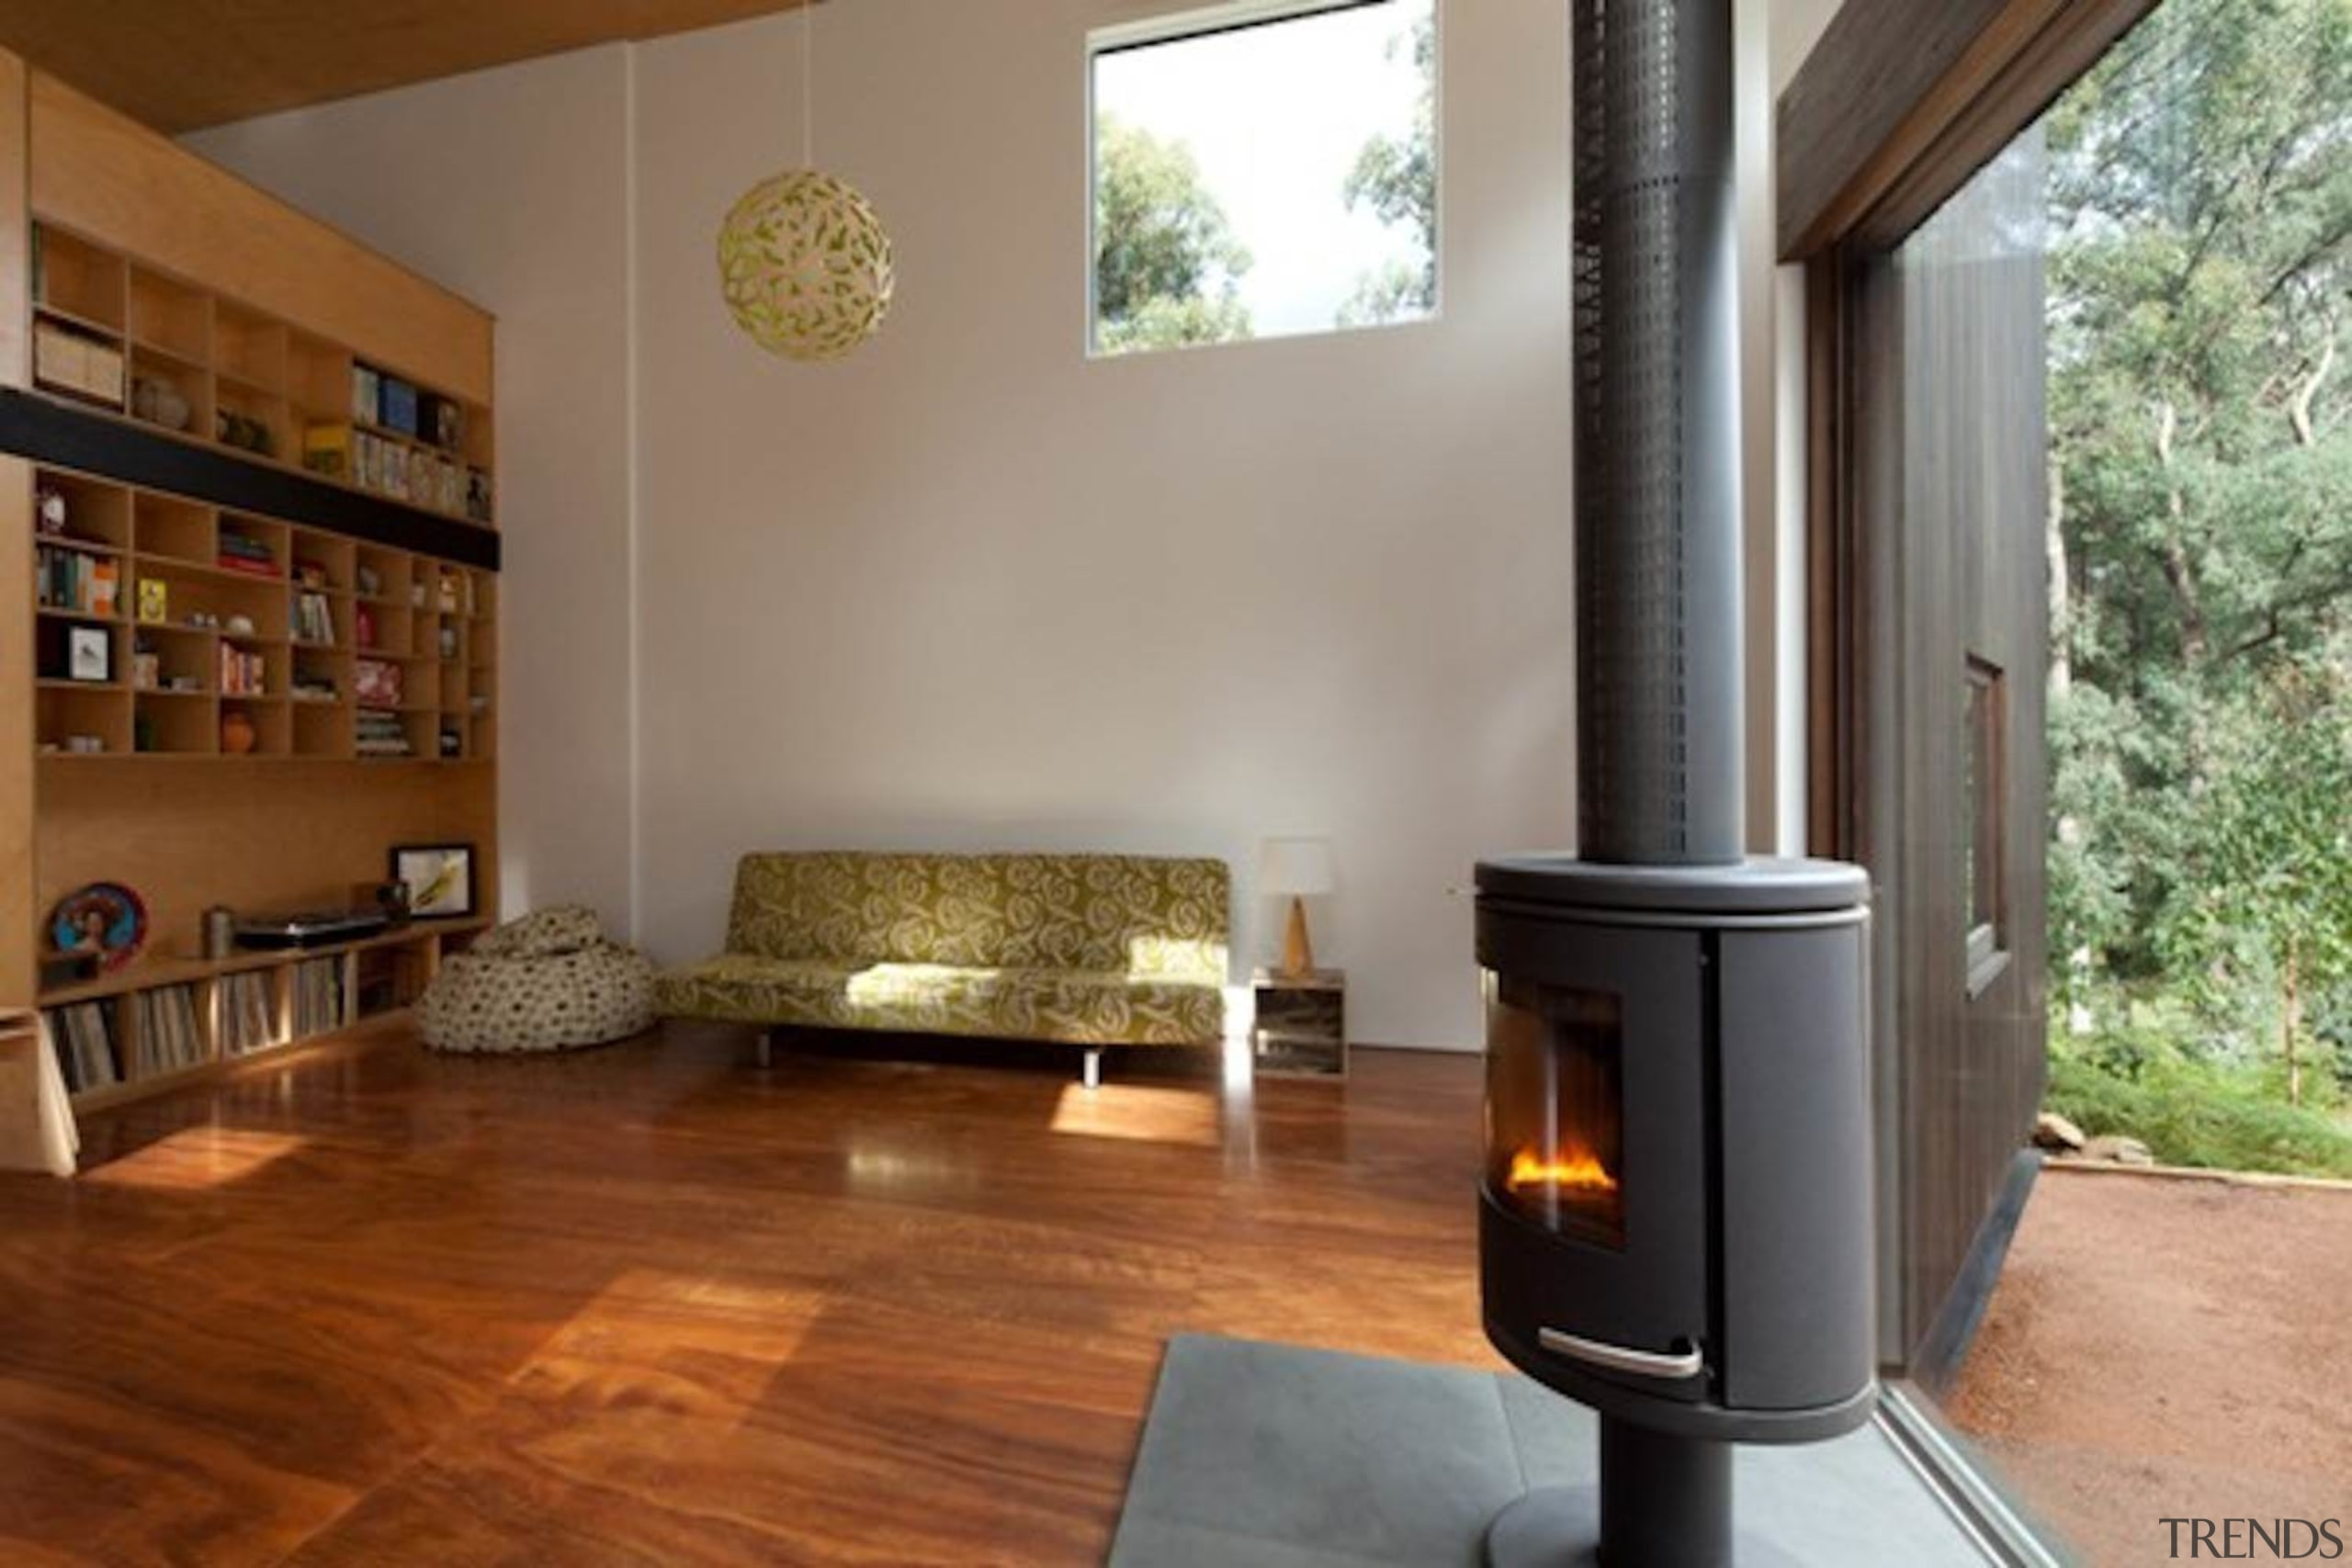 Architect: Steffen Welsch Architects architecture, fireplace, floor, flooring, hardwood, hearth, home, home appliance, house, interior design, laminate flooring, living room, real estate, wood, wood burning stove, wood flooring, brown, gray